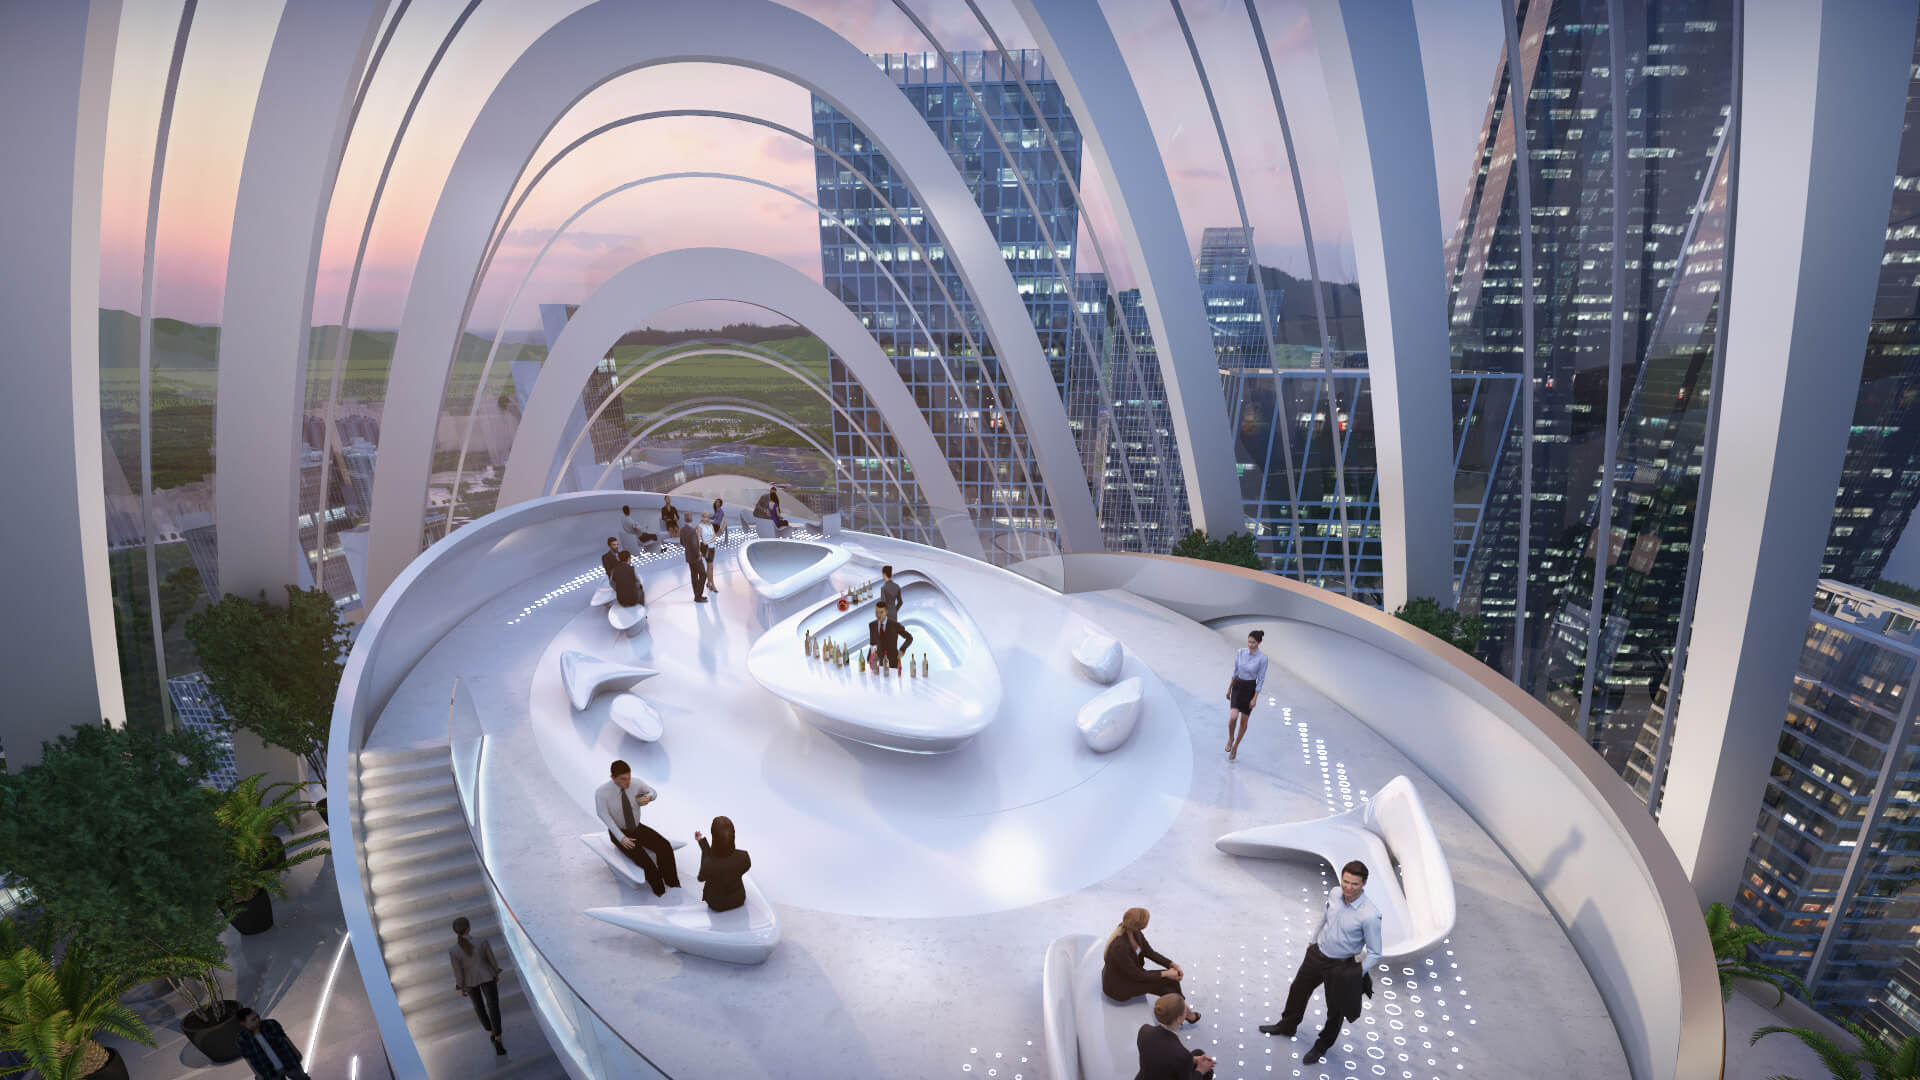 The Sky Lab on the rooftop intends to provide splendid views towards the dynamic city | OPPO Headquarters | Zaha Hadid Architects | STIRworld